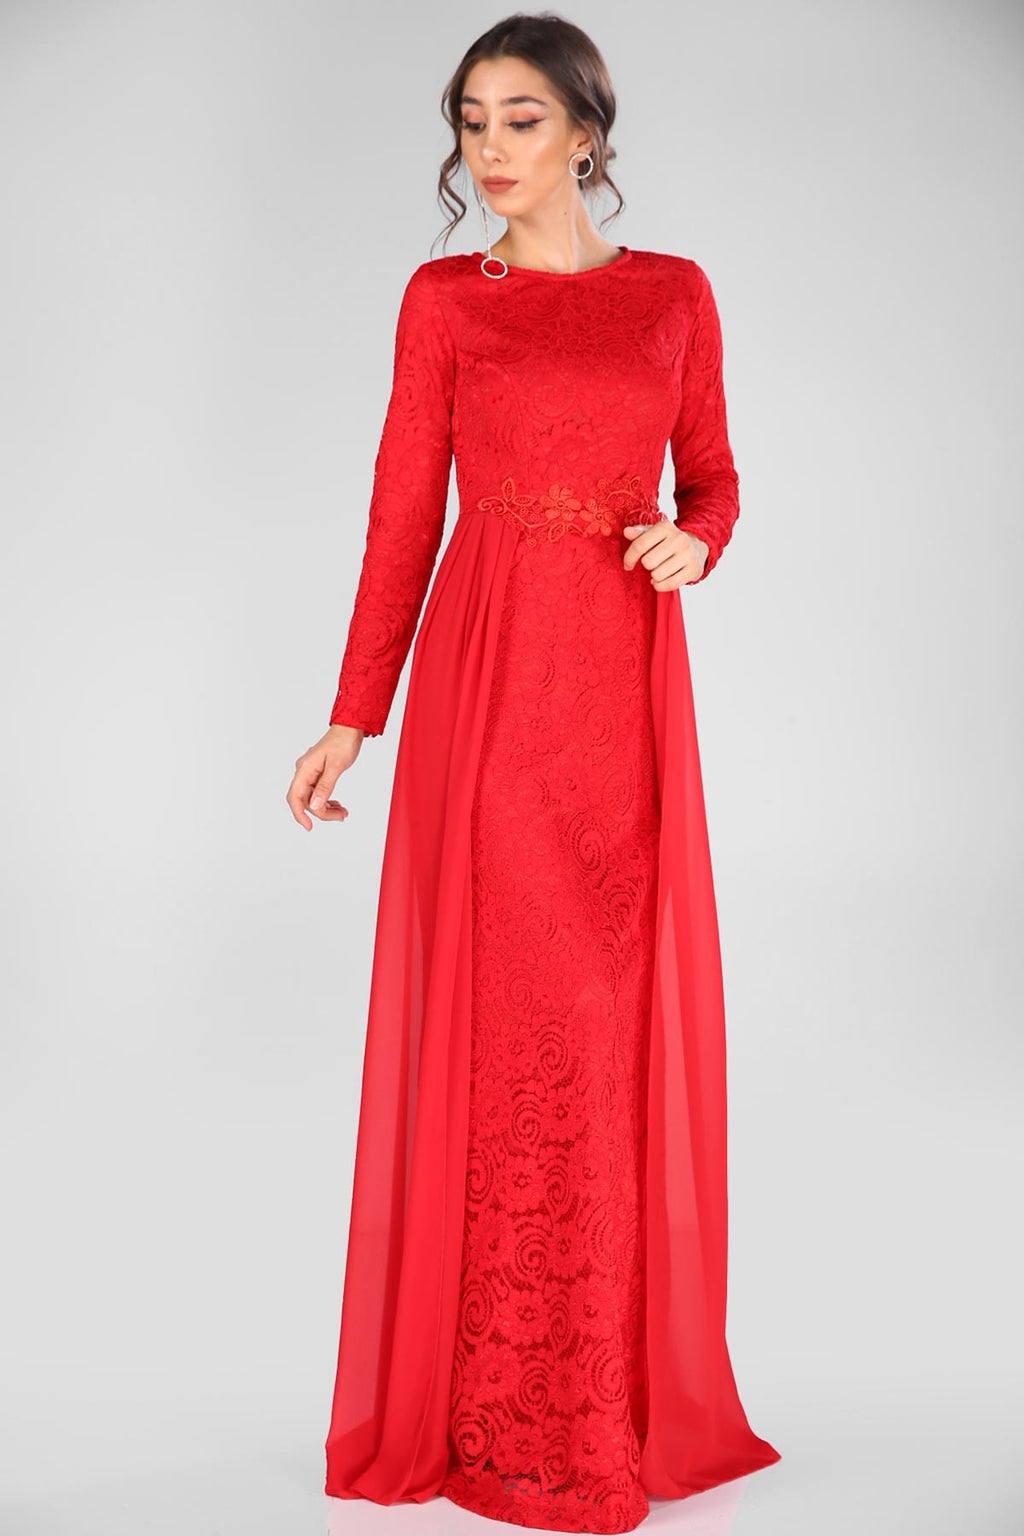 Lace Embroidered Red Evening Dress - THE UNIQUE FIT